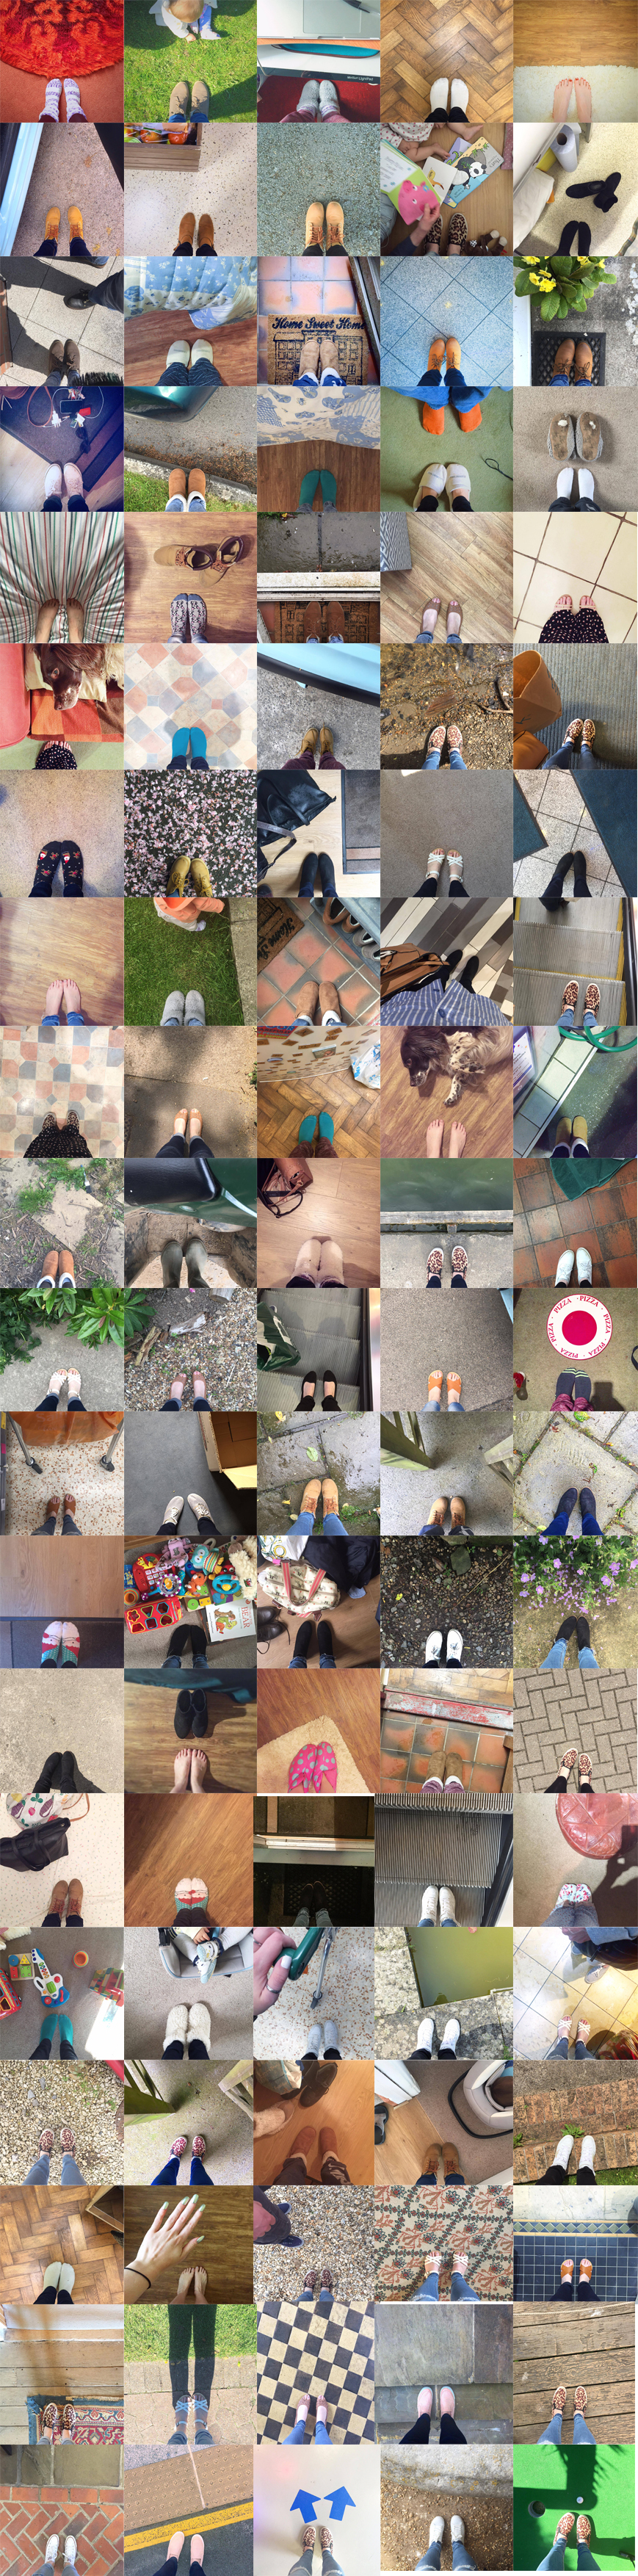 Follow #100DaysOfStepping on my Instagram here.